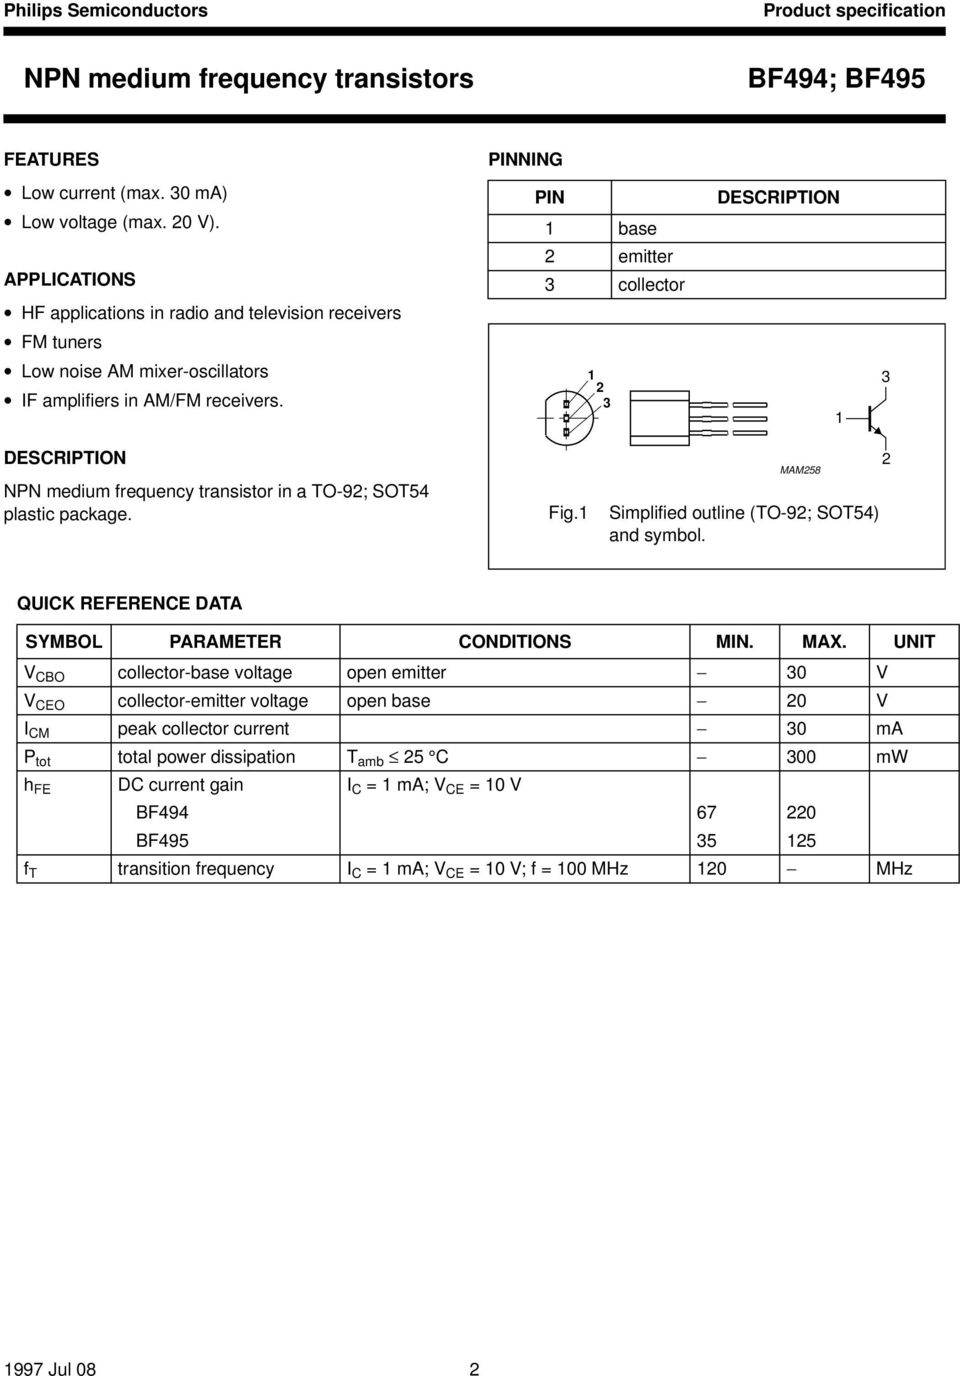 Data Sheet Bf494 Bf495 Npn Medium Frequency Transistors Discrete The If Circuit Of Radio Amplifier Handbook Halfpage1 2 3 1 Description Transistor In A To